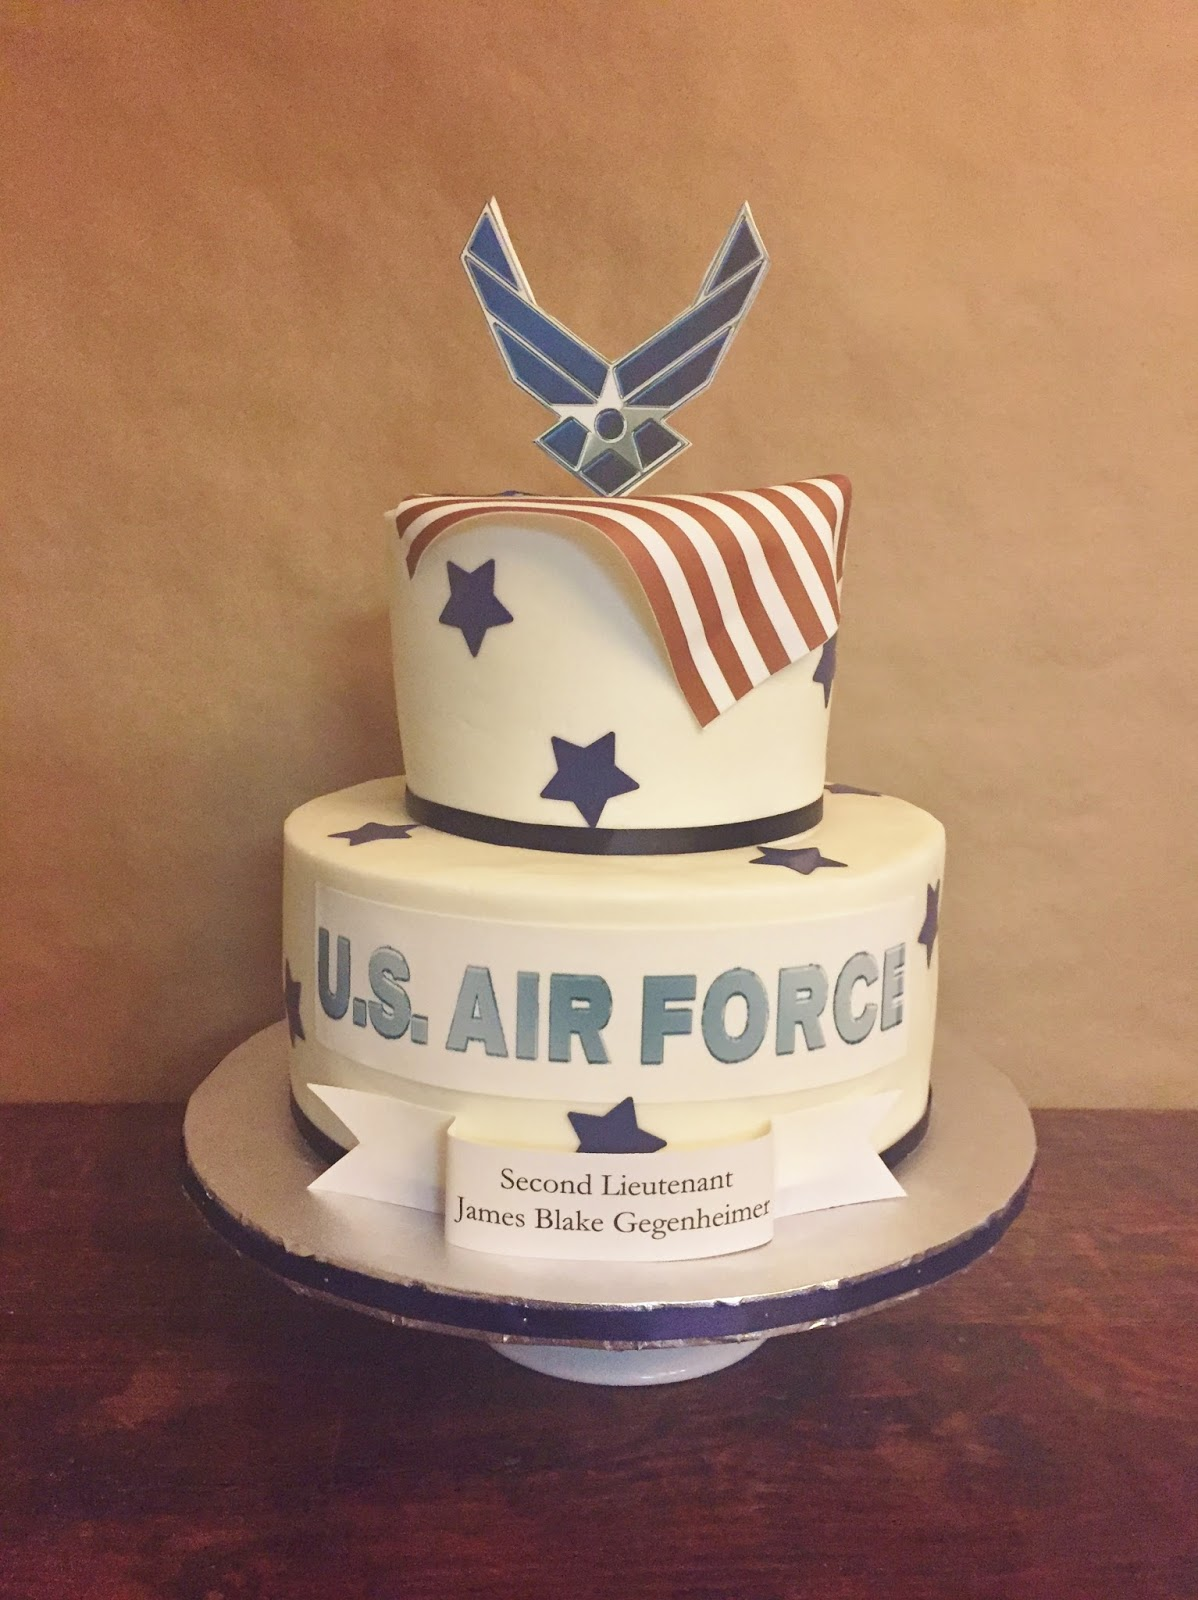 Cakes by mindy u s air force cake 6 10 for Air force cakes decoration